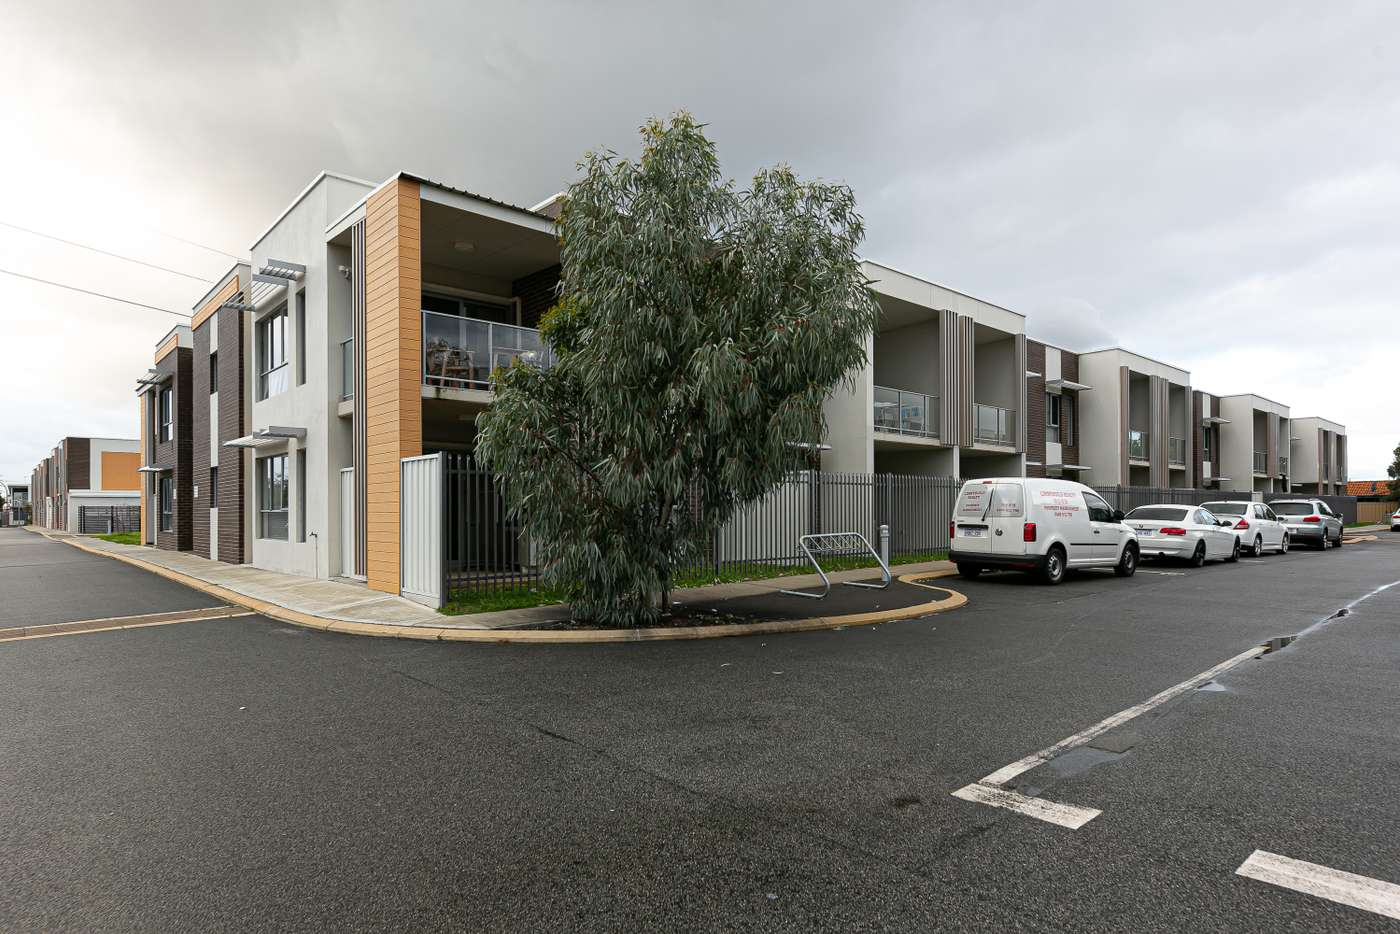 Main view of Homely apartment listing, 16 Grey St, Cannington WA 6107